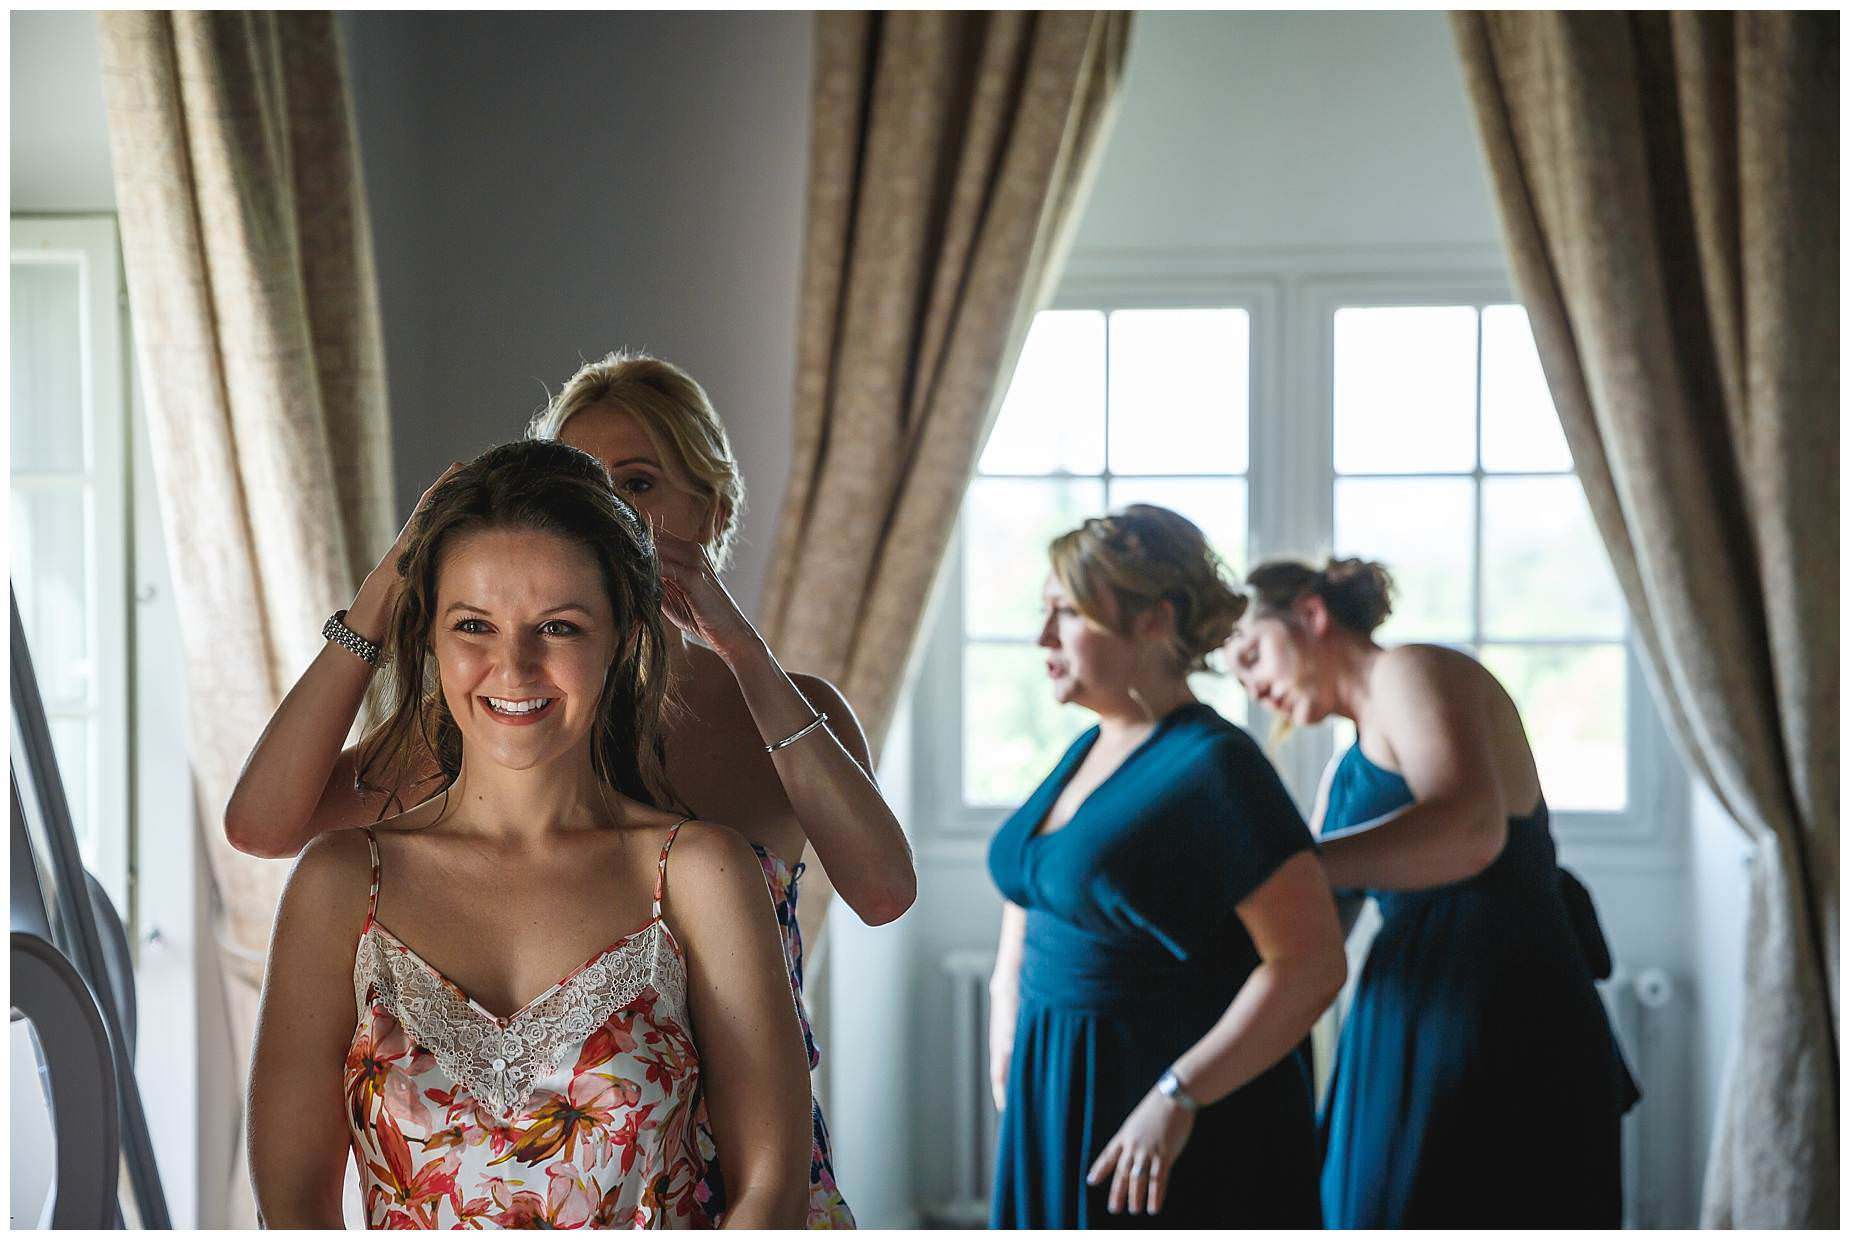 Bridesmaids adjusting hair